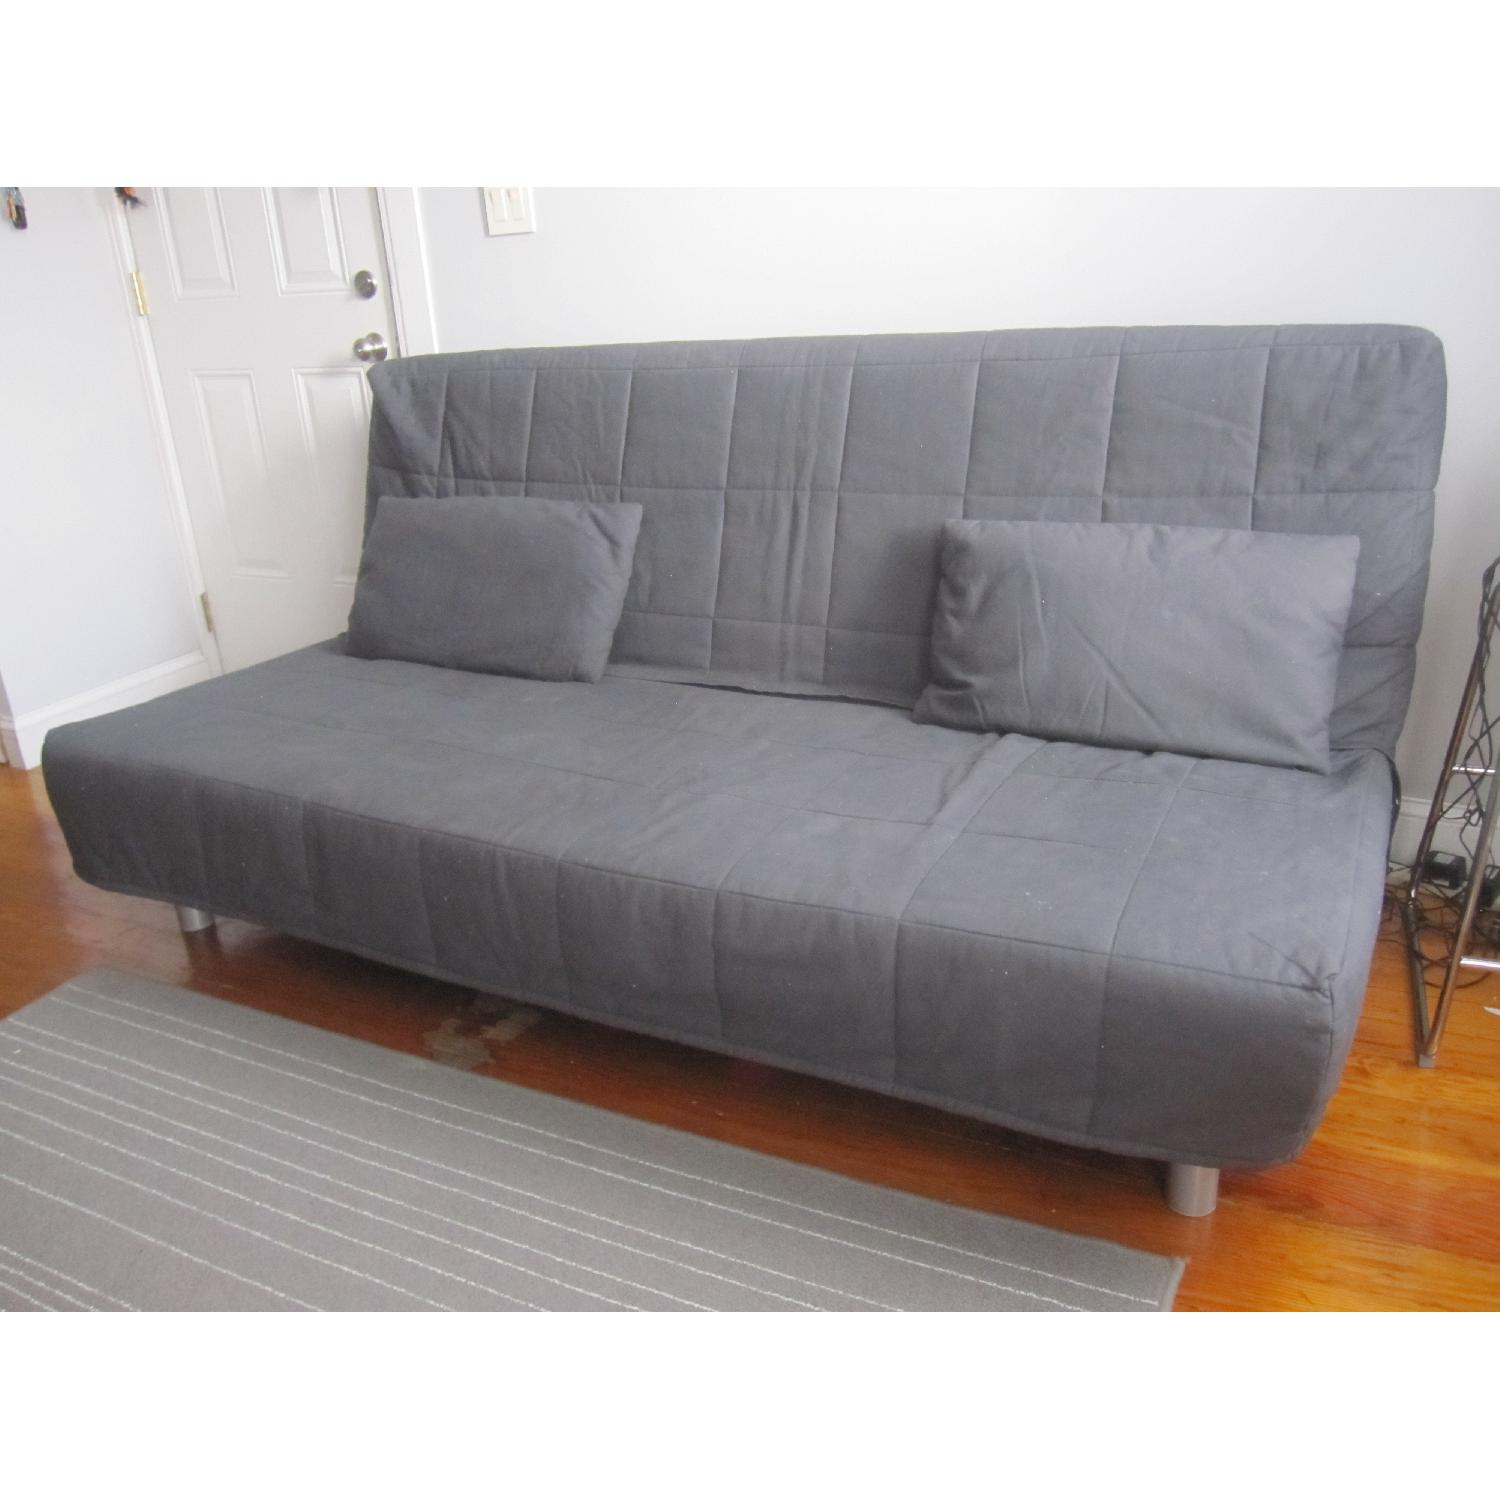 used sleeper sofas for sale in nyc aptdeco. Black Bedroom Furniture Sets. Home Design Ideas